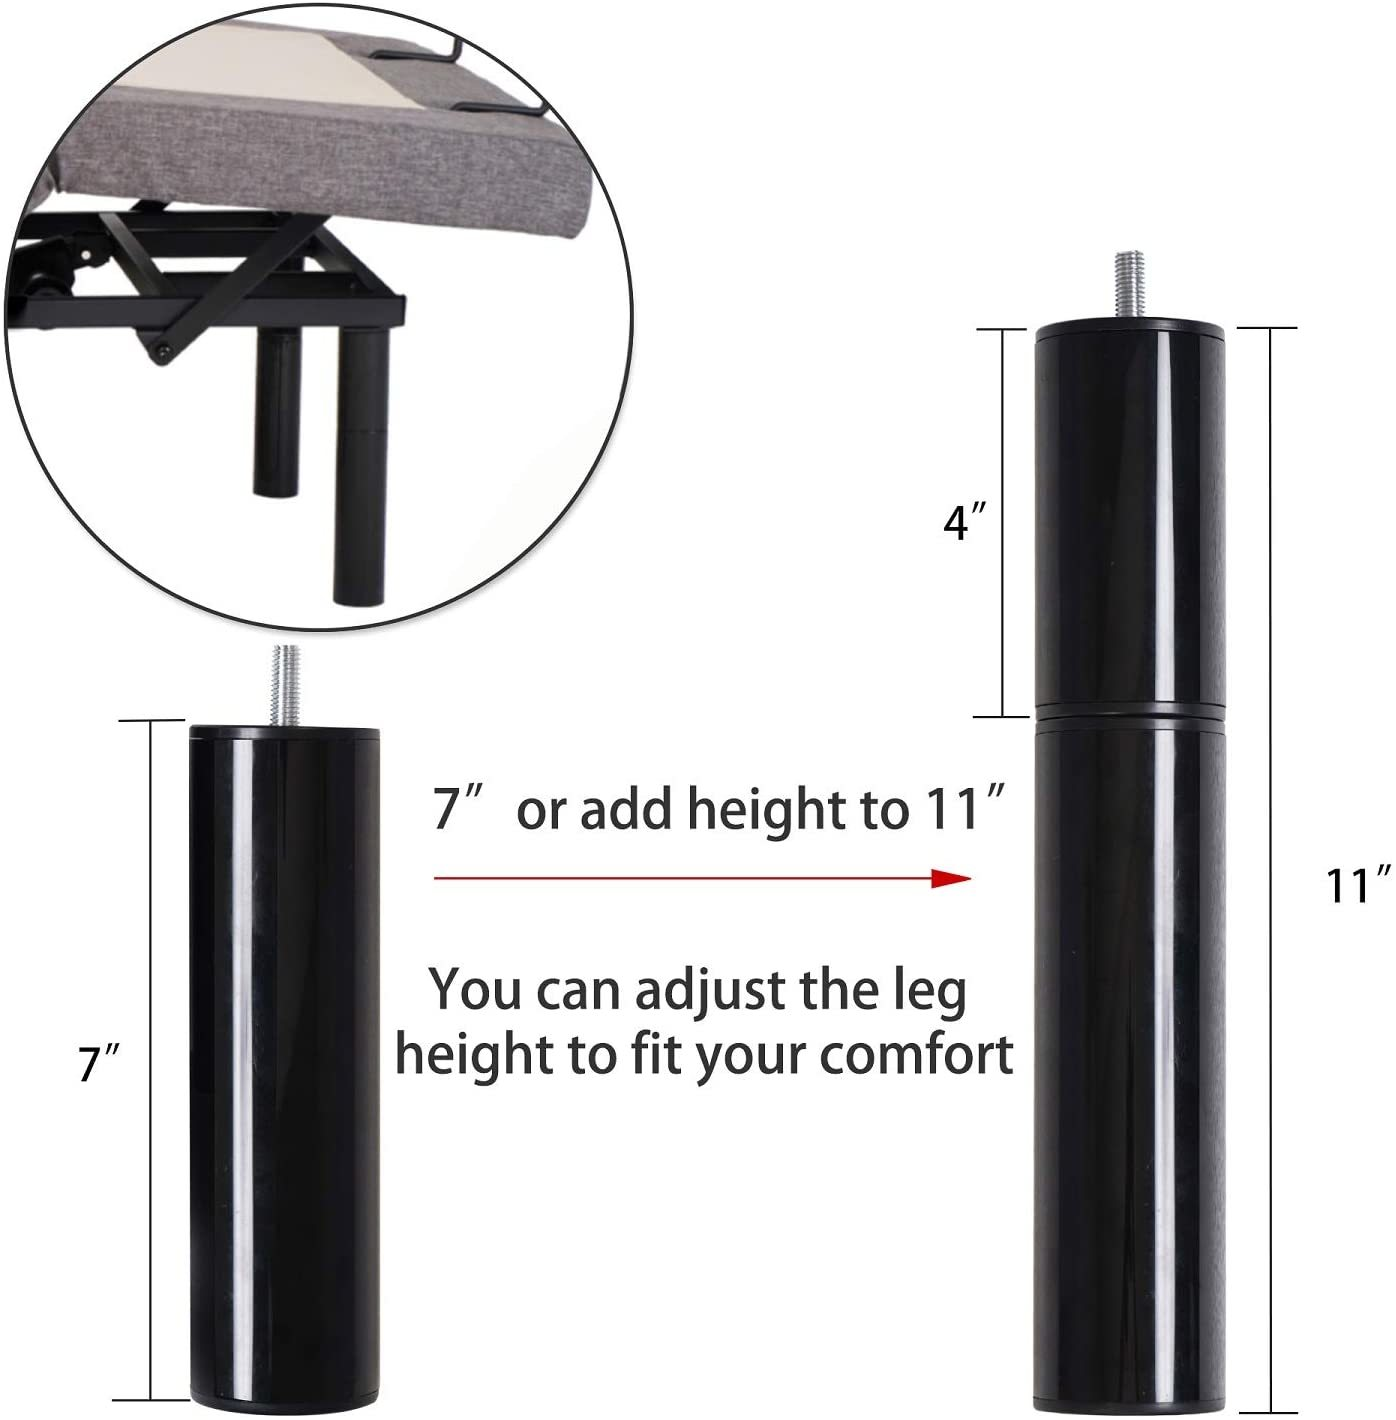 Kamots Beauty Adjustable Bed Review - Height adjustability